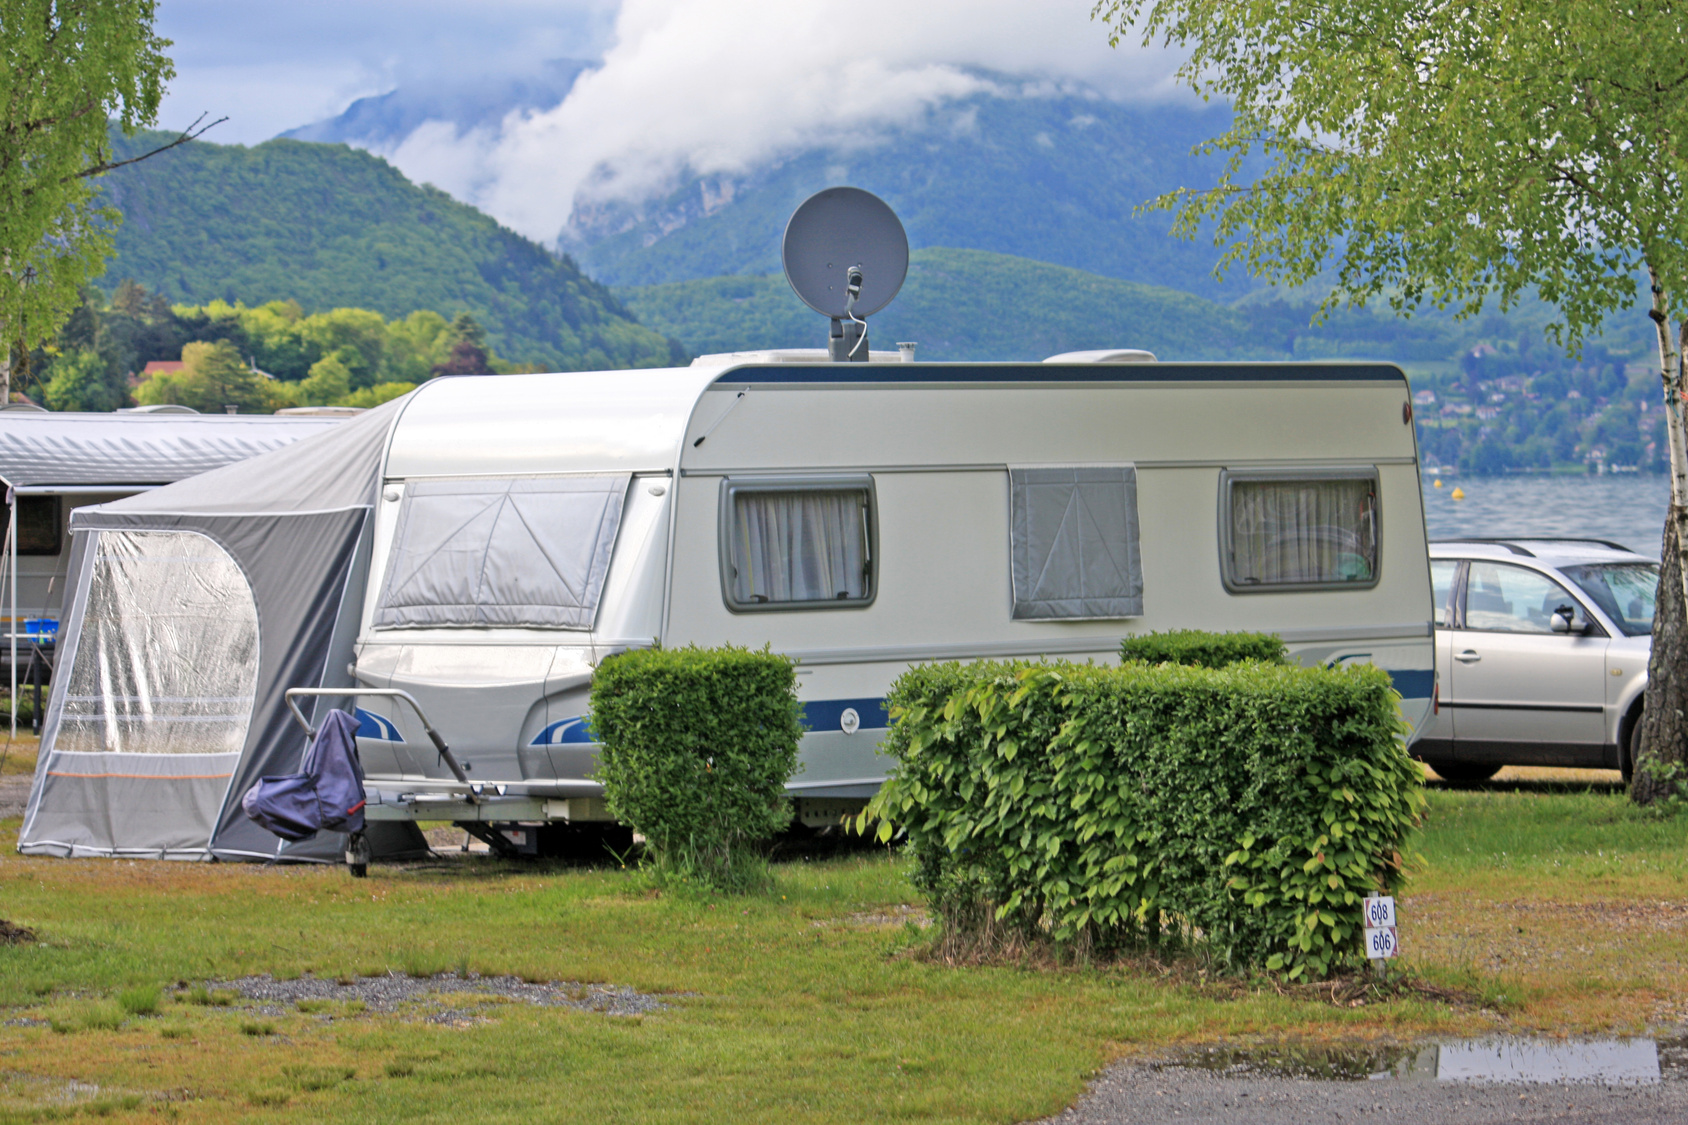 Caravan on camp site